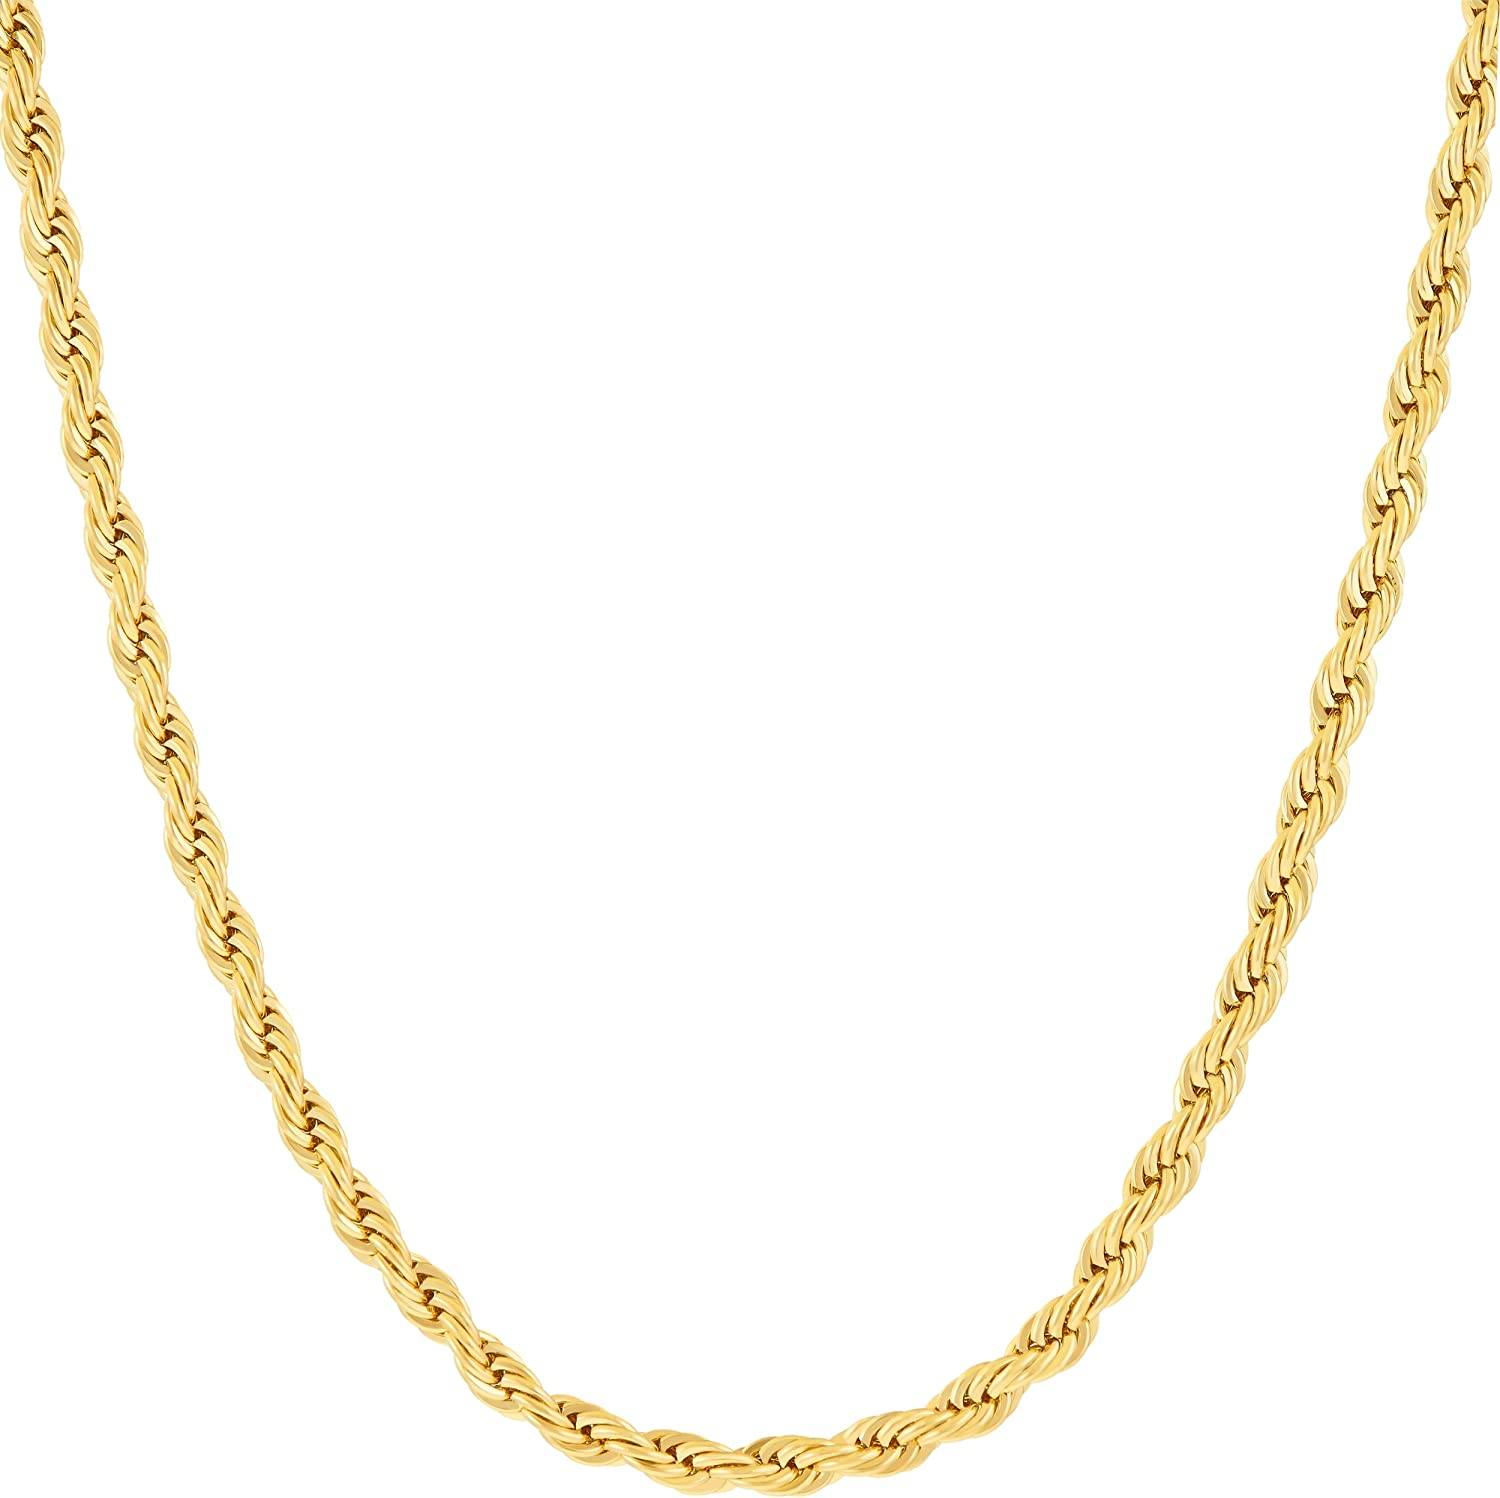 LIFETIME JEWELRY 3mm Diamond Cut Rope Chain Necklace 24k Real Gold Plated